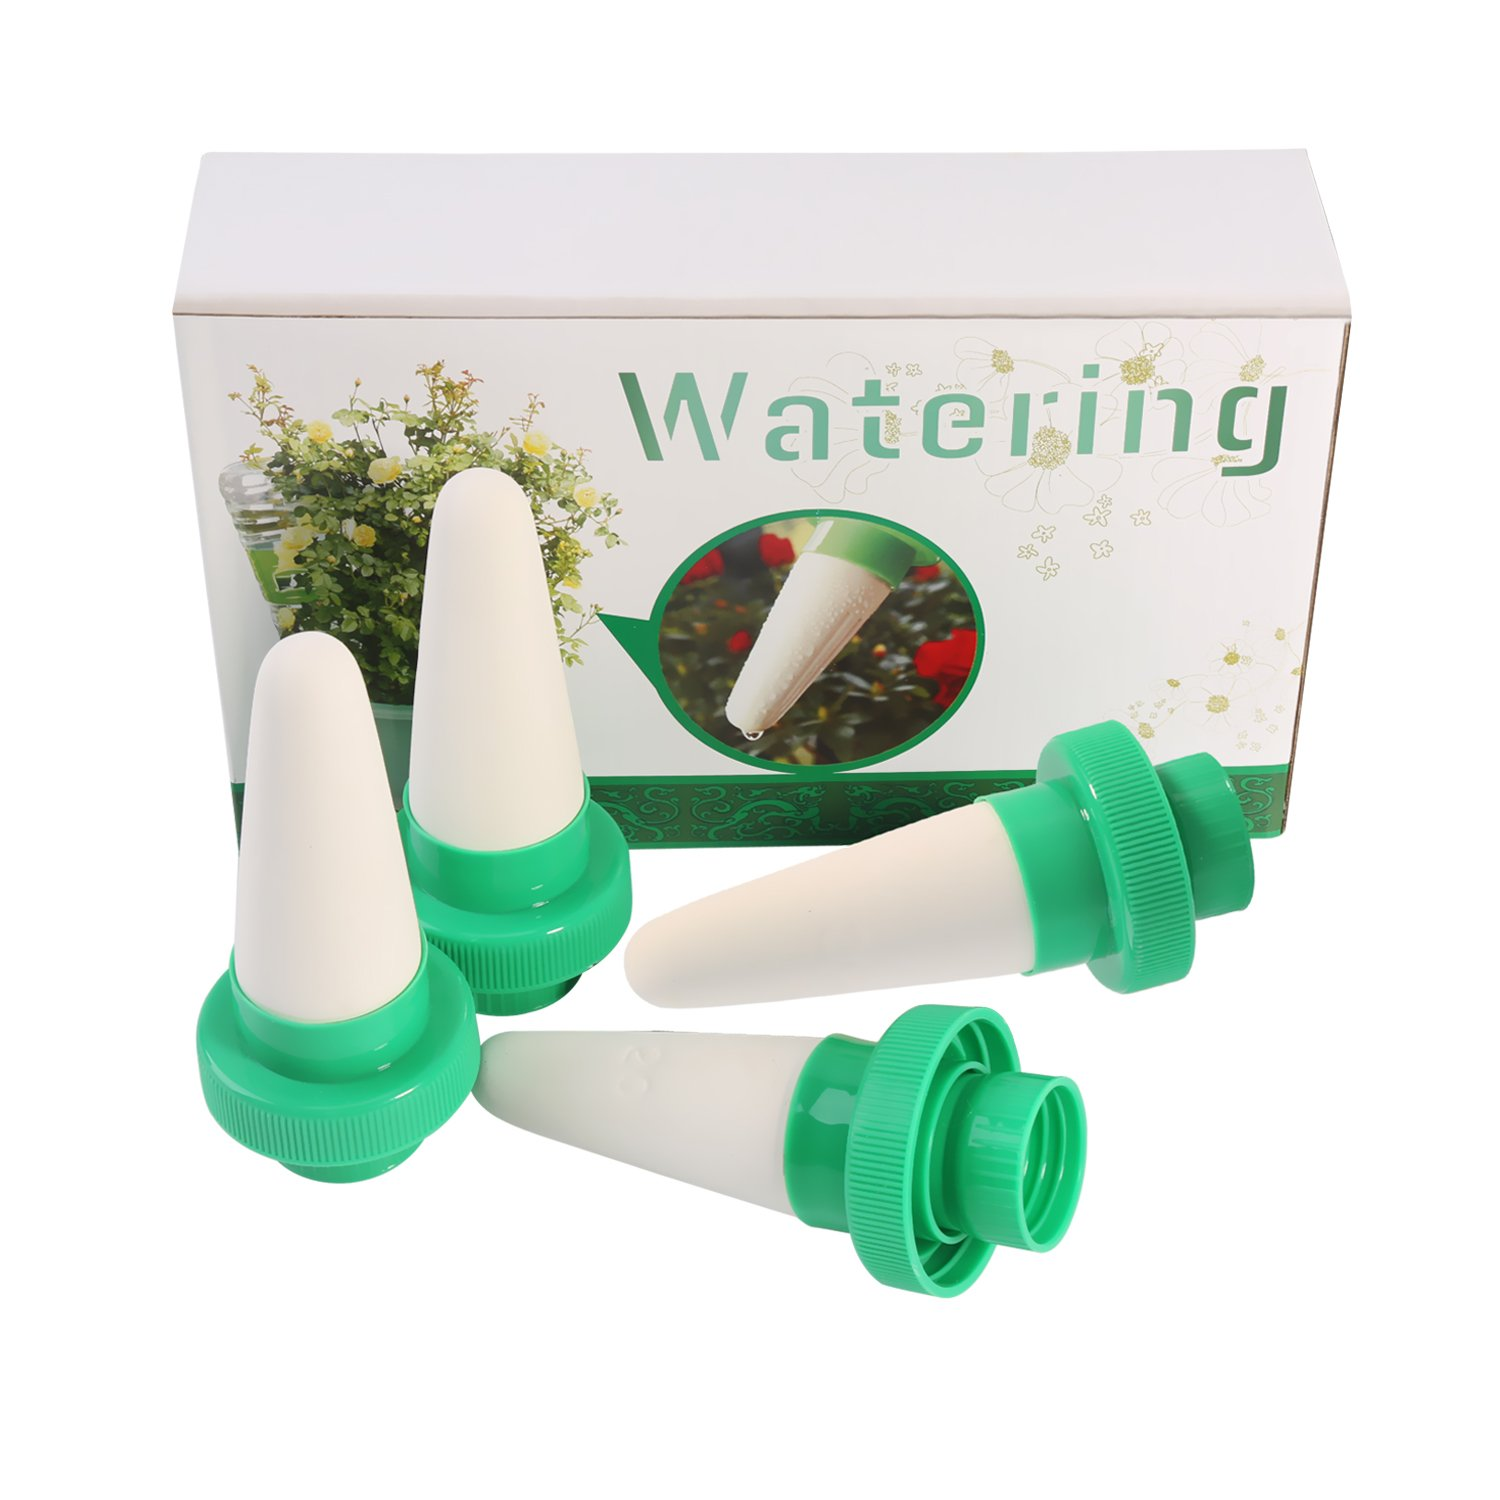 Automatic Drip Irrigation Watering Bulbs Globes Stakes System Plant Waterer Self Watering Spikes Automatic Vacation Plant Waterer Nannies devices with Slow Release Control valve switch 12 Pack